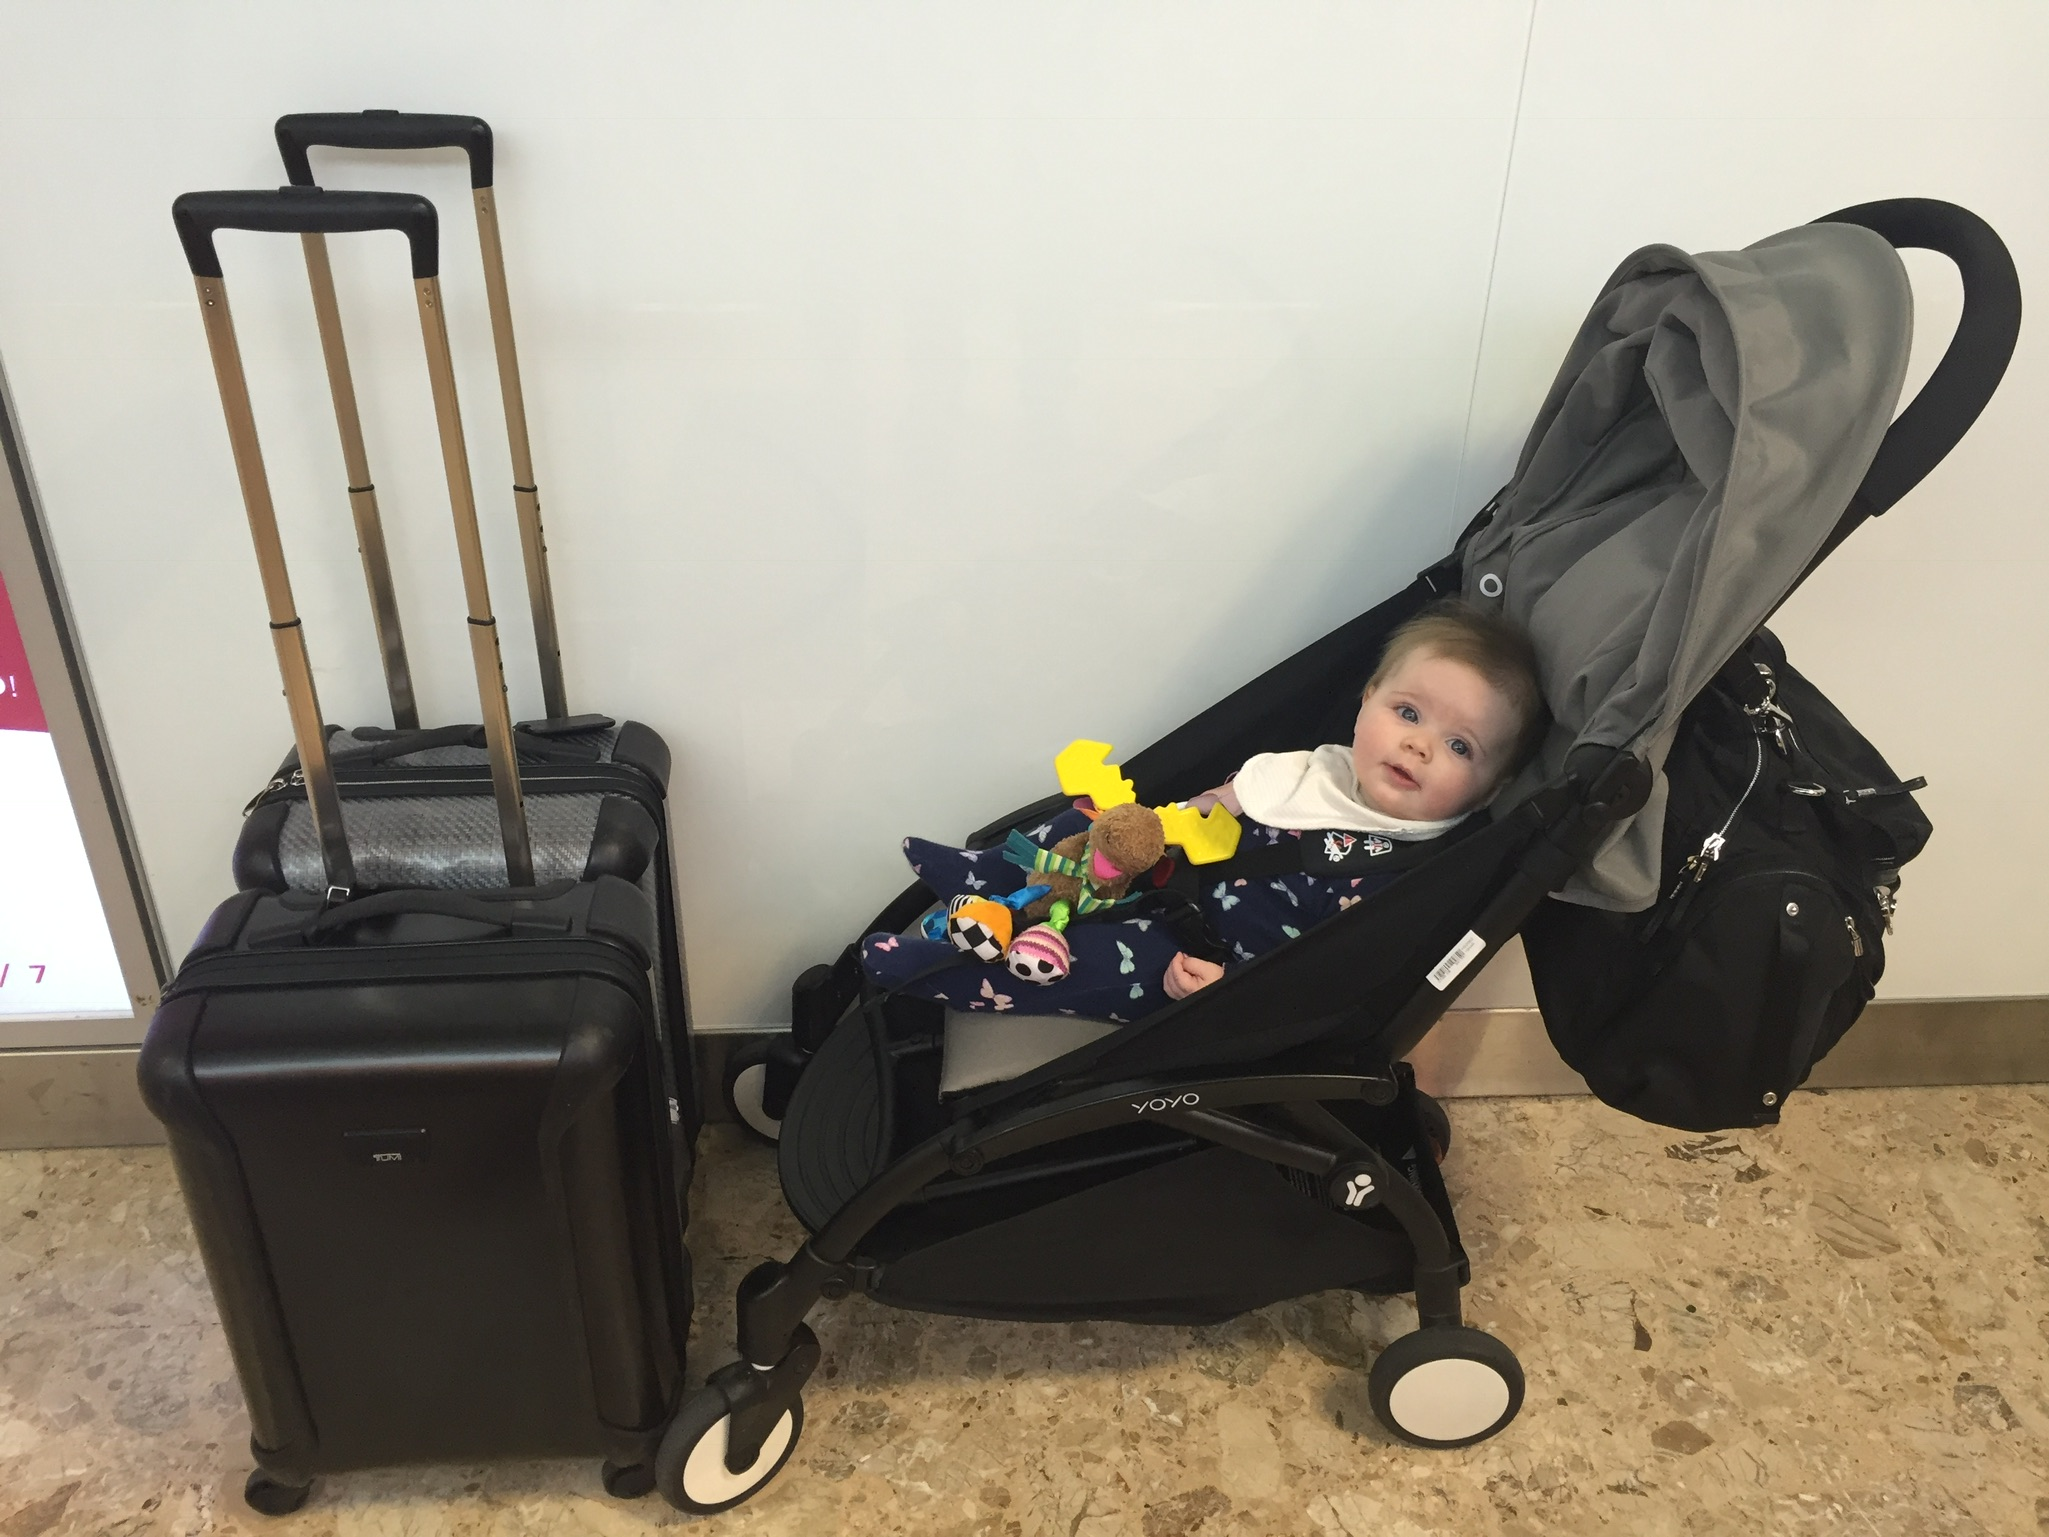 flying with a baby and packing